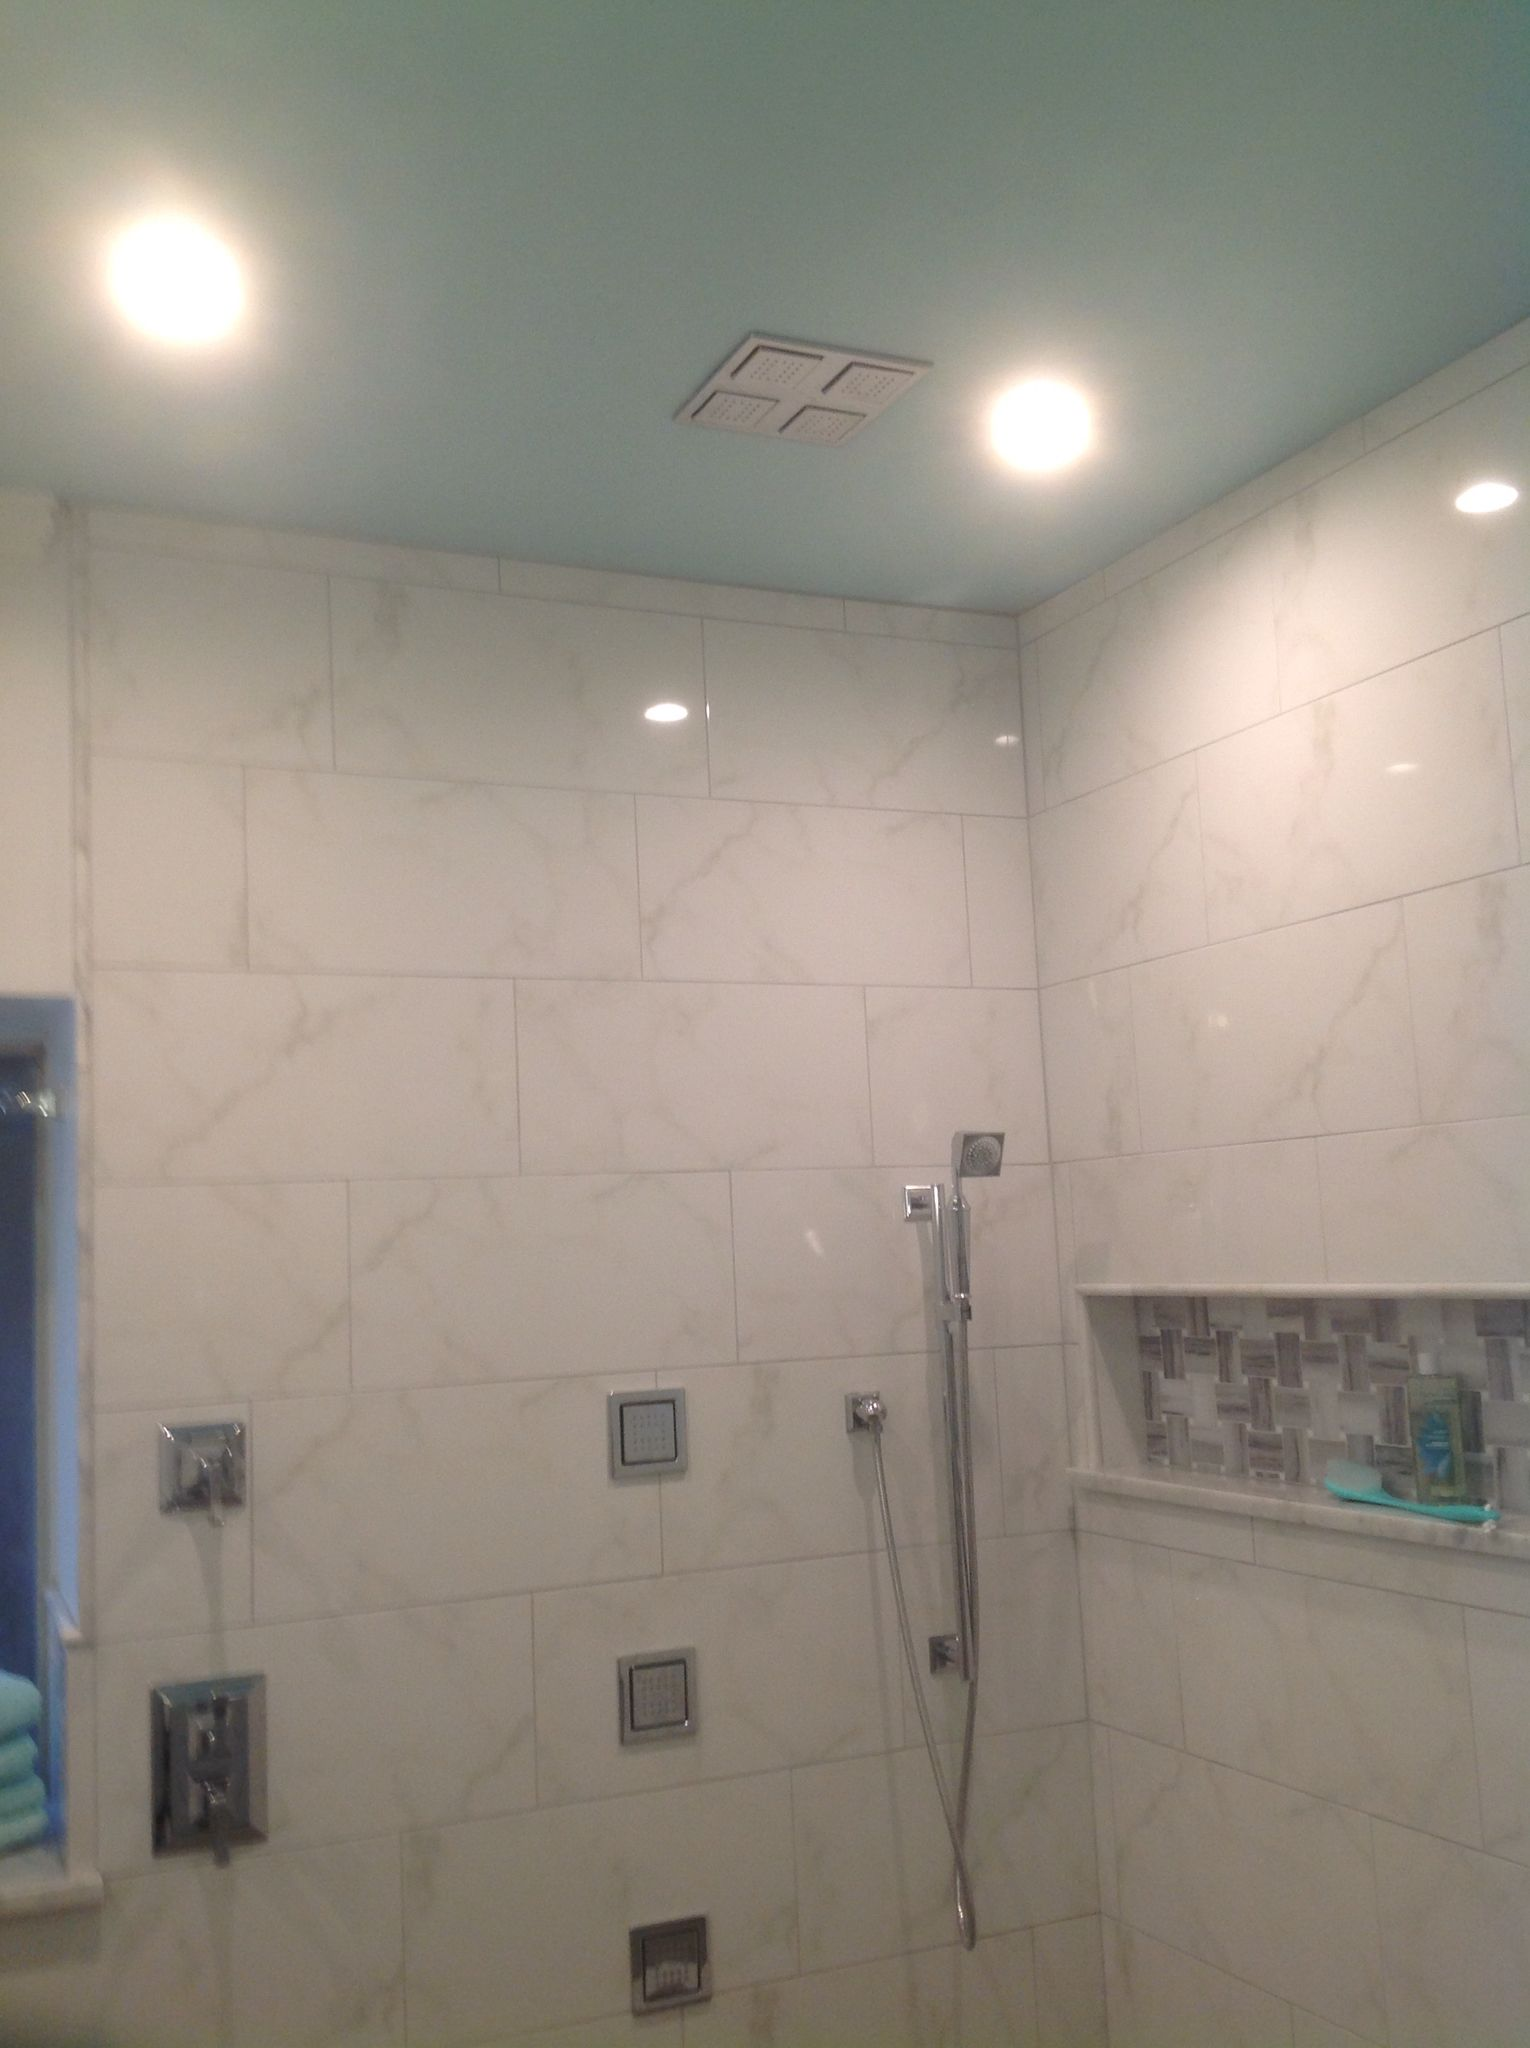 Kohler Ceiling Rain Shower In Ceiling Painted Tranquil Vibe By